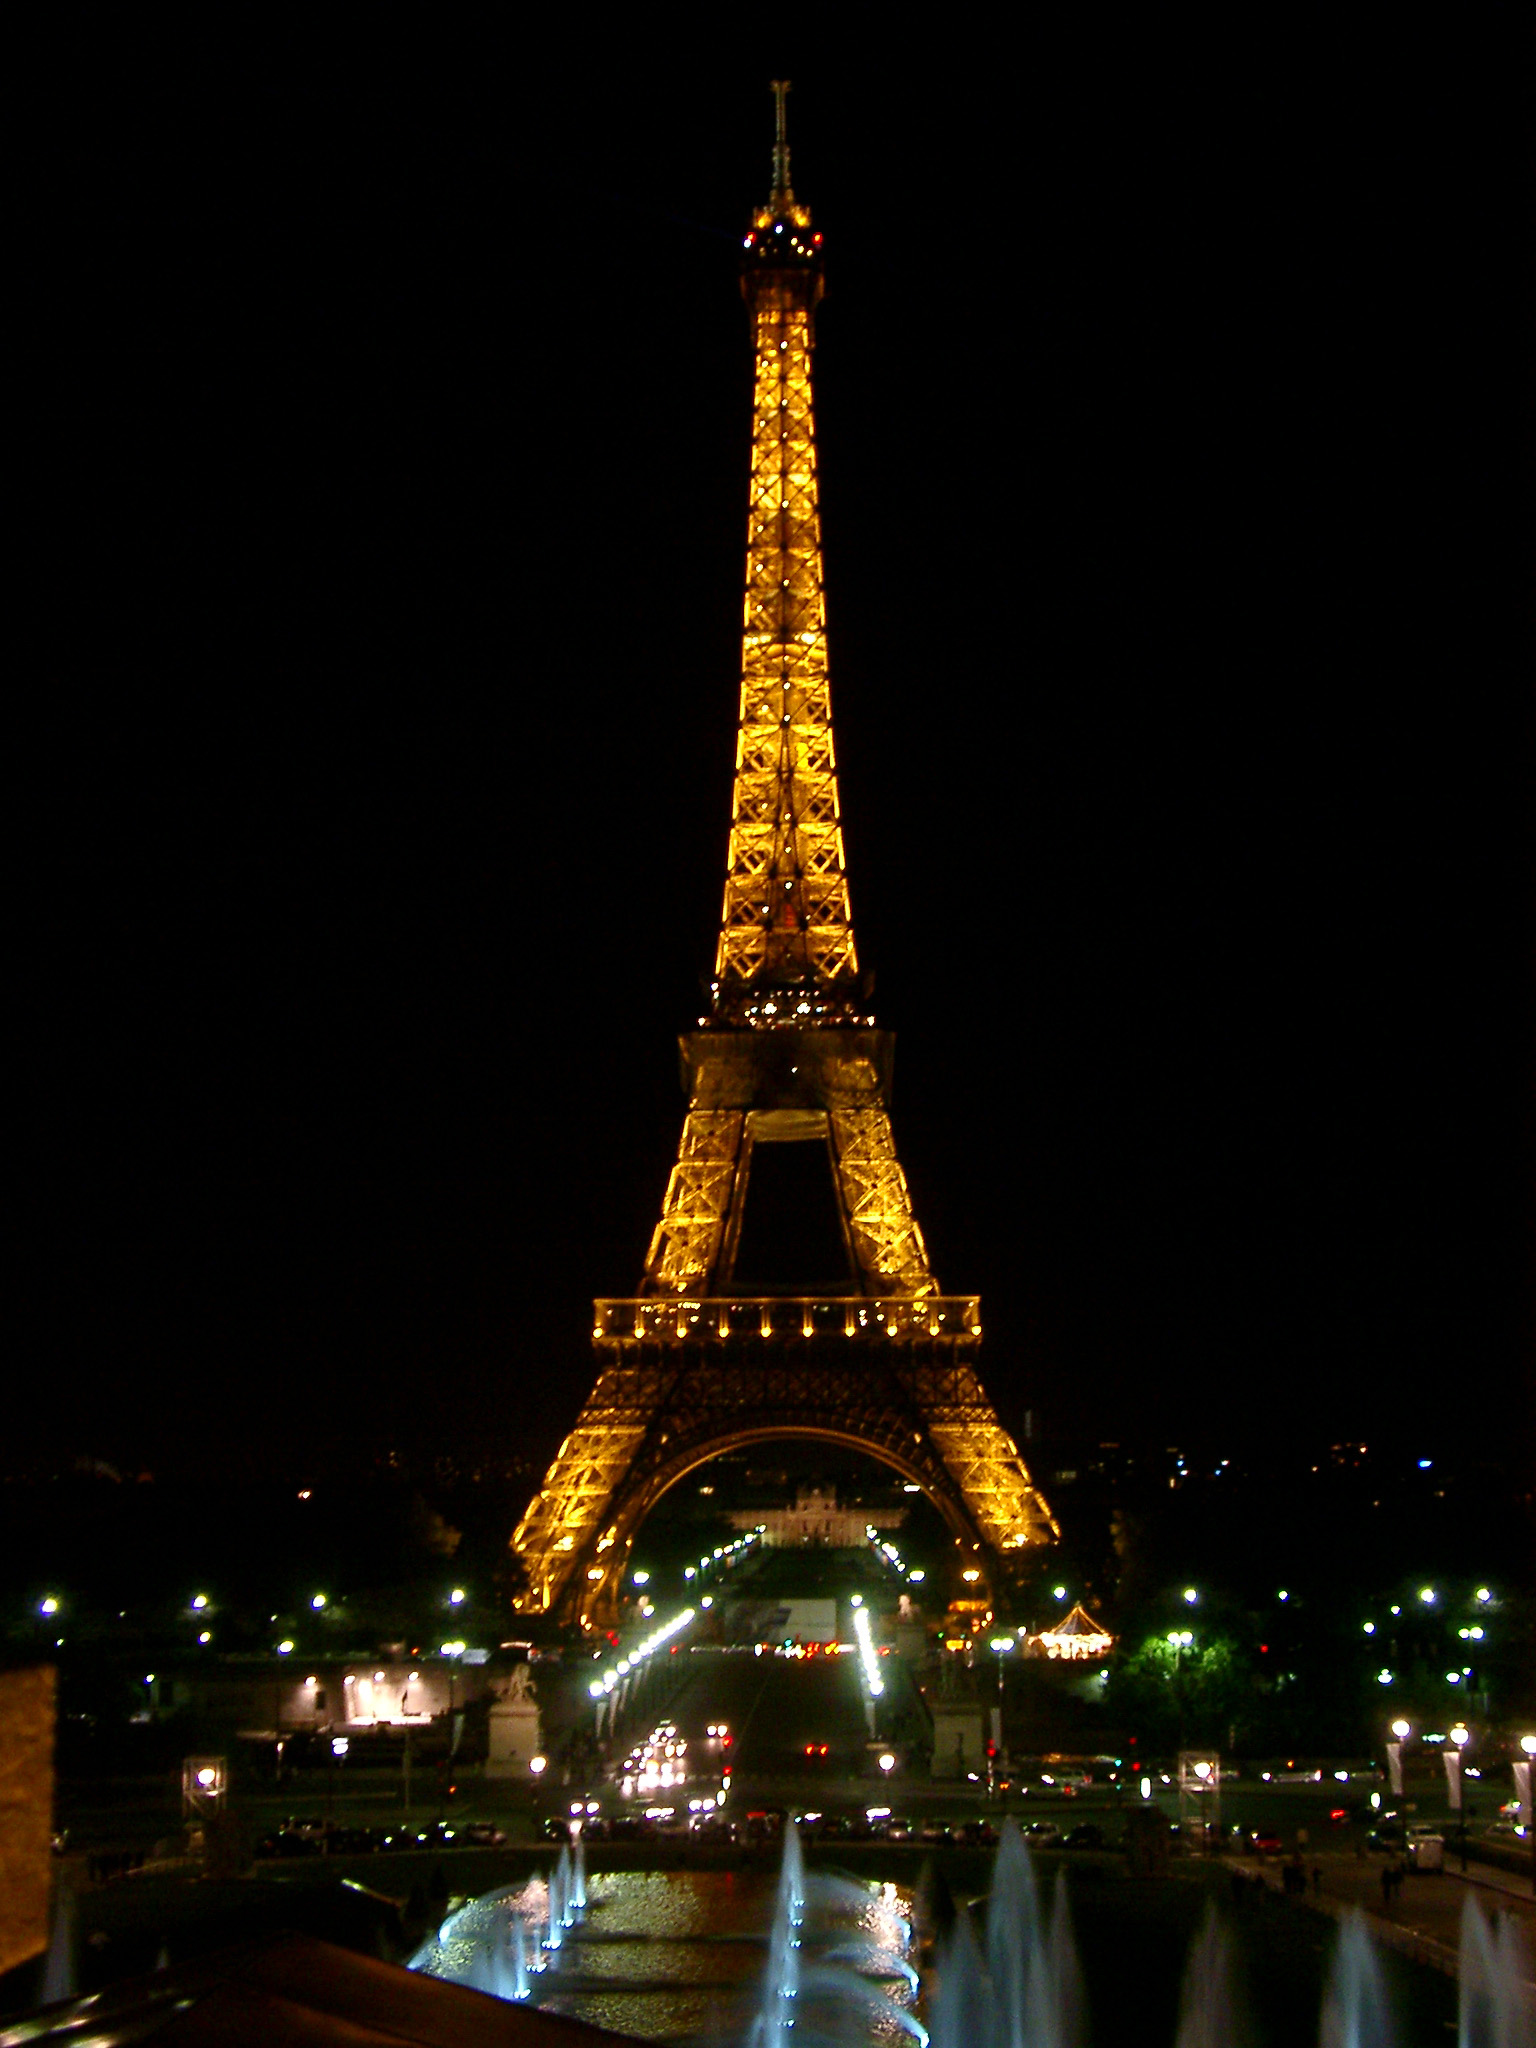 Eiffel Tower, Paris, illuminated at night showing the lighting display on the iron girders against a dark night sky